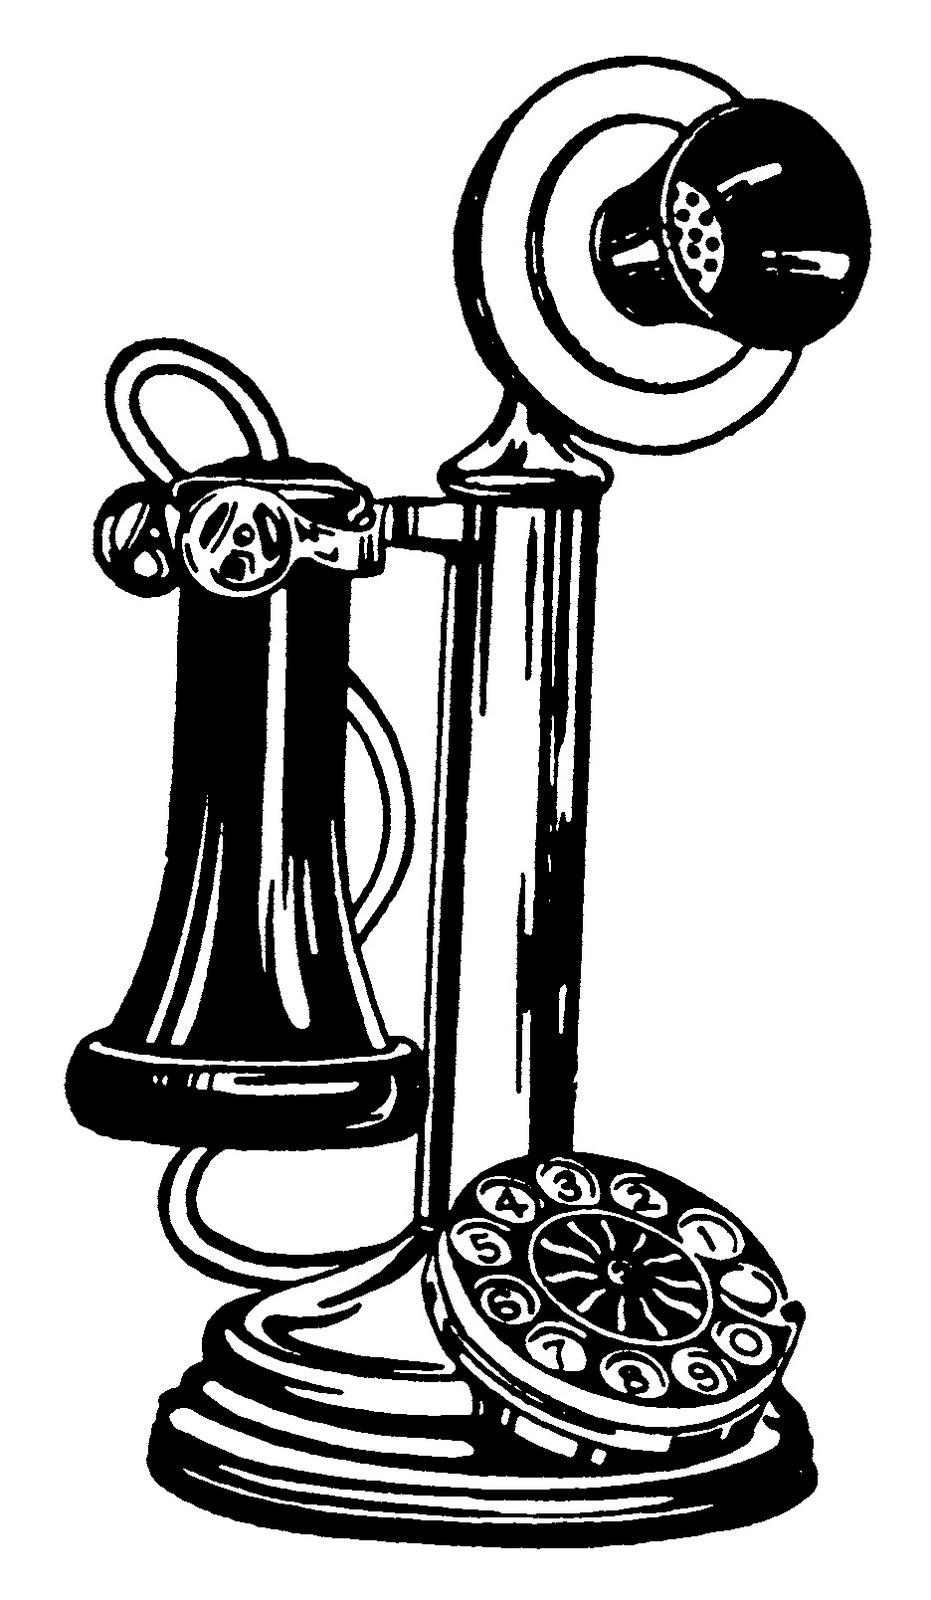 931x1600 Old Fashioned Phone Clip Art